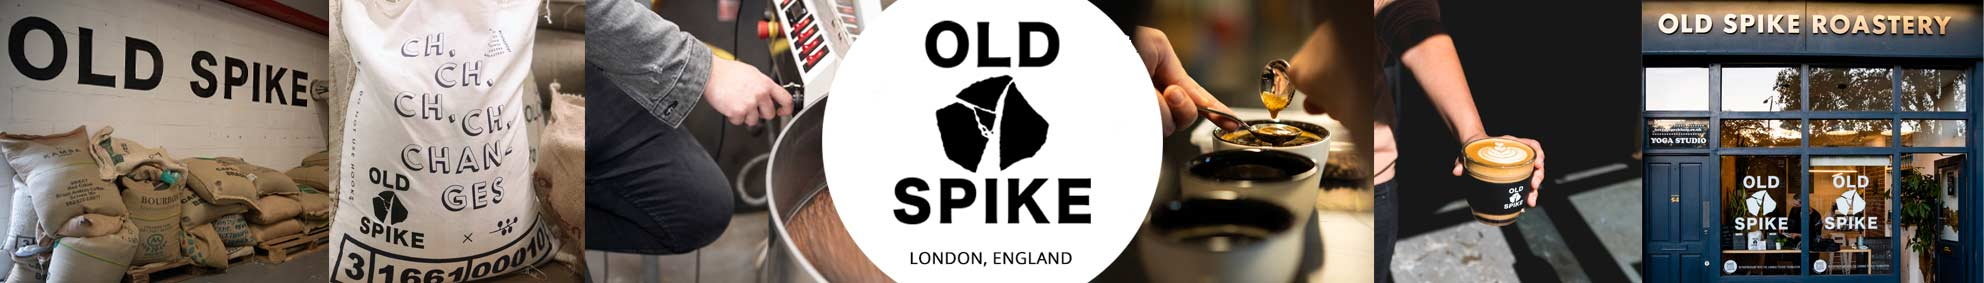 Old Spike London on UK Best Coffee Subscription Service